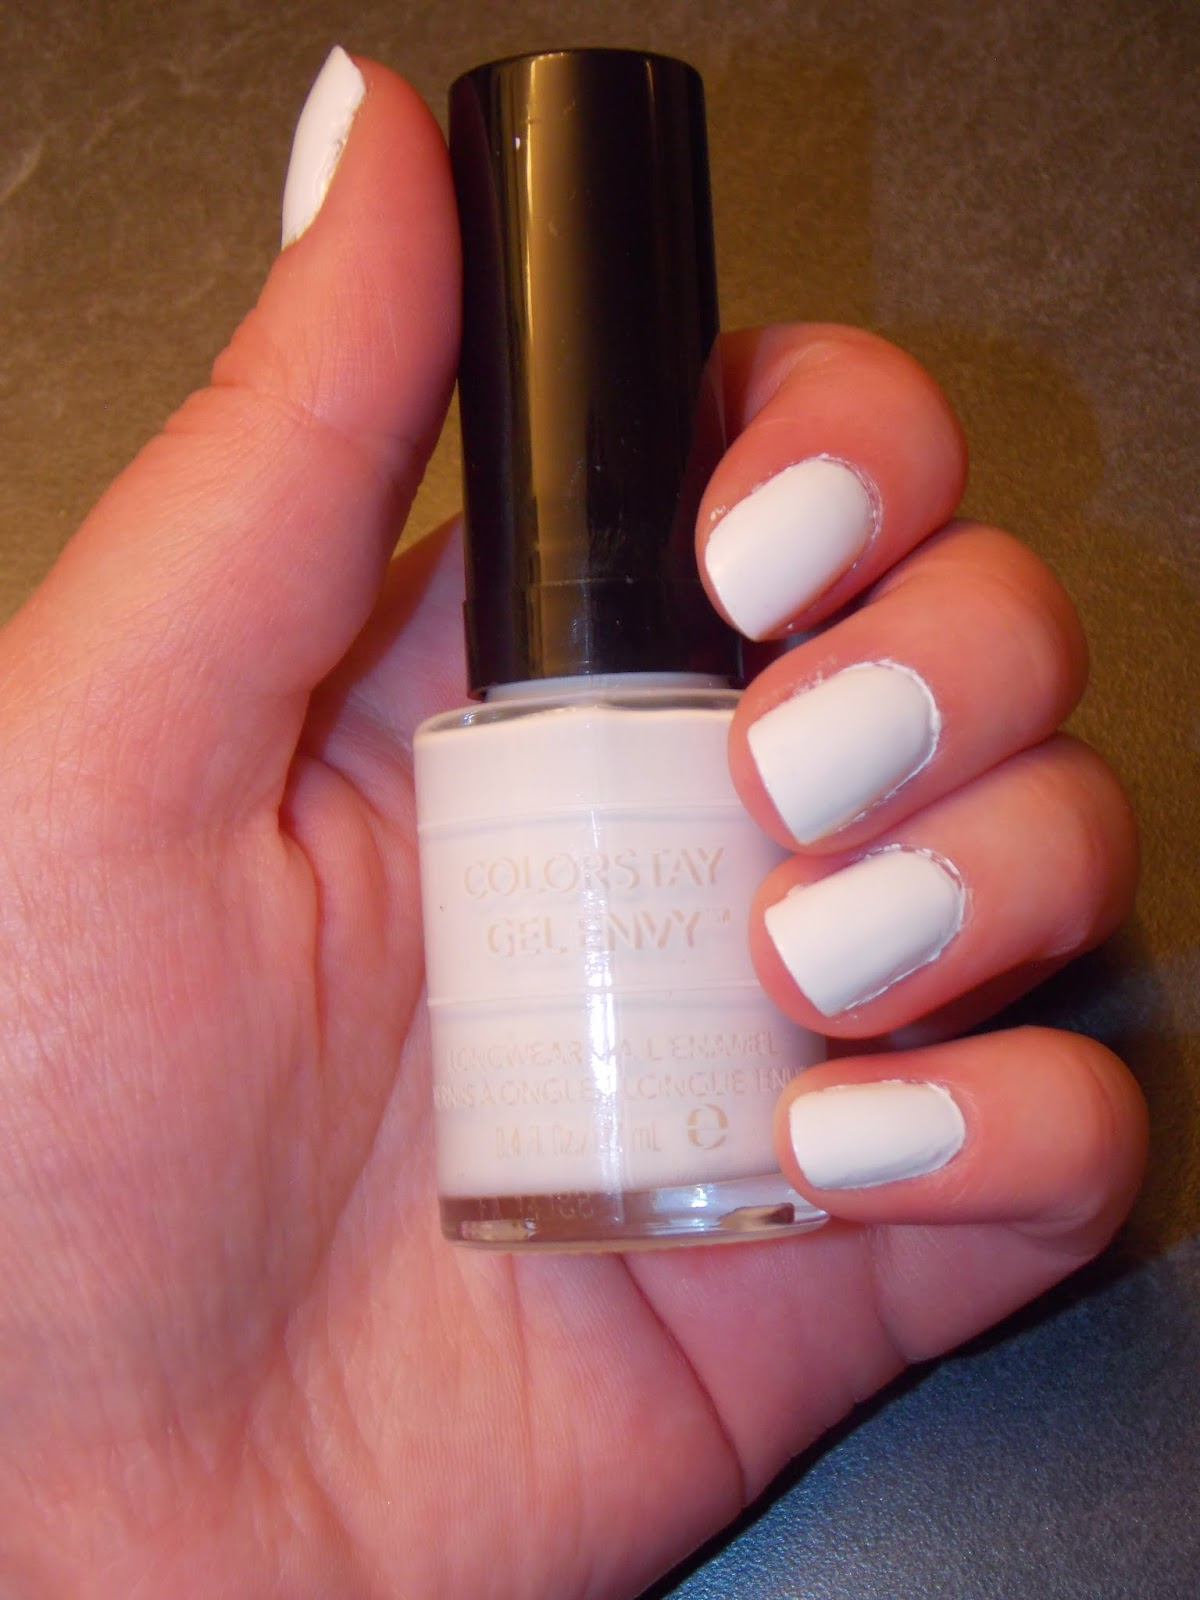 10 Downing Chic: Nails of the Day || Revlon ColorStay Gel Envy ...